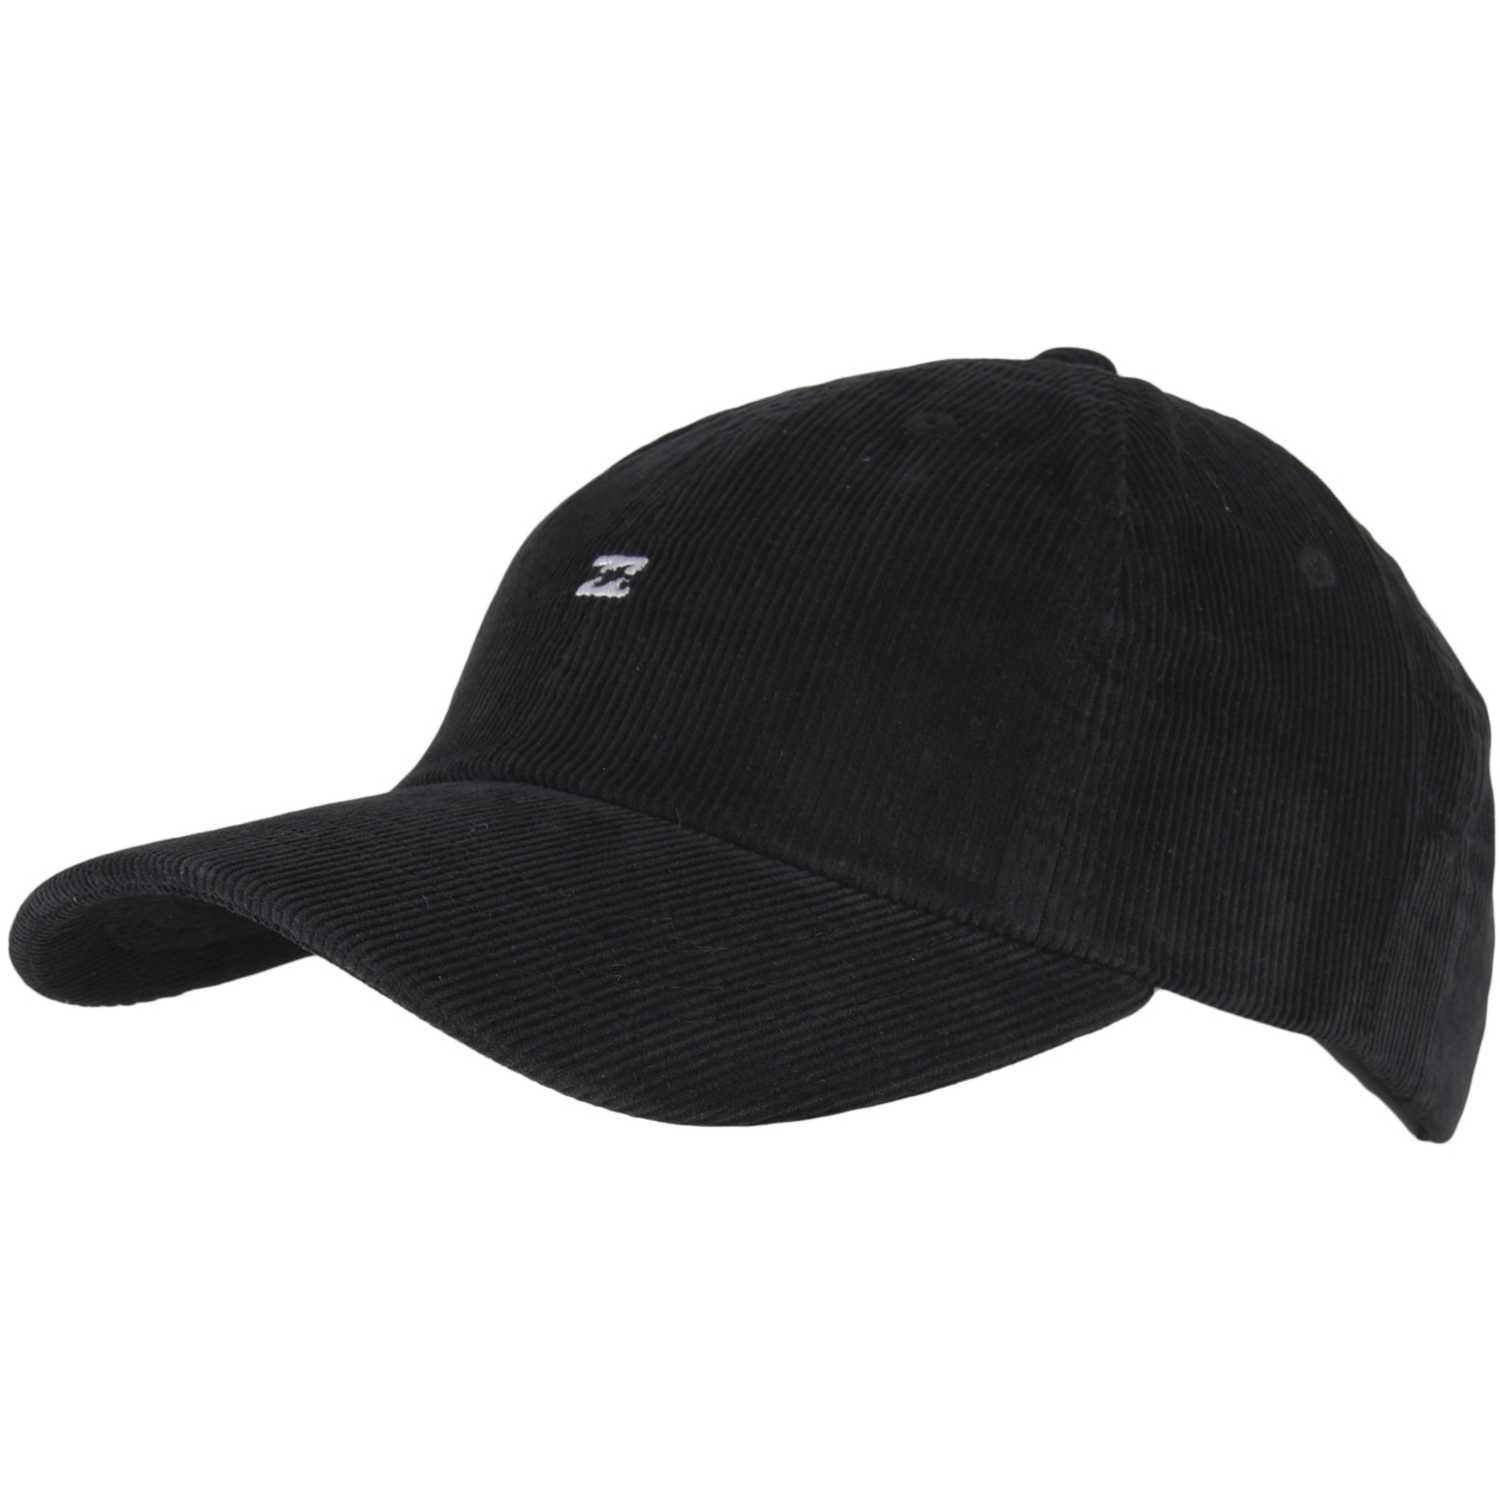 Gorro de Hombre Billabong Negro all day lad cap cord